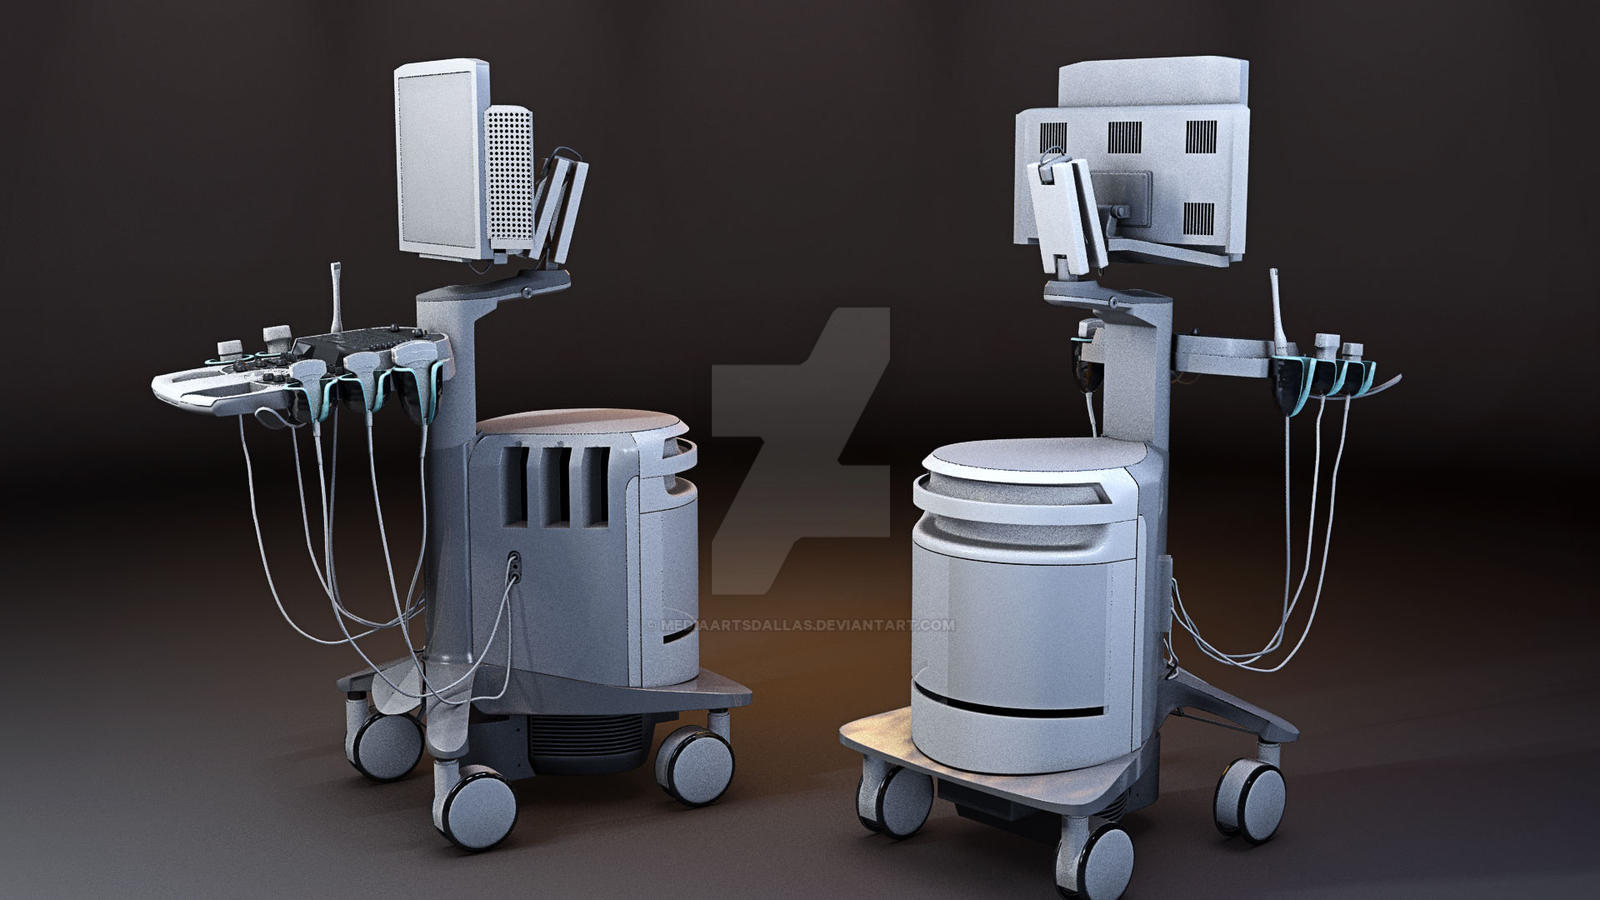 Mason-Jones Siemens-Acuson-S1000-Ultrasound-Machin by mediaartsdallas